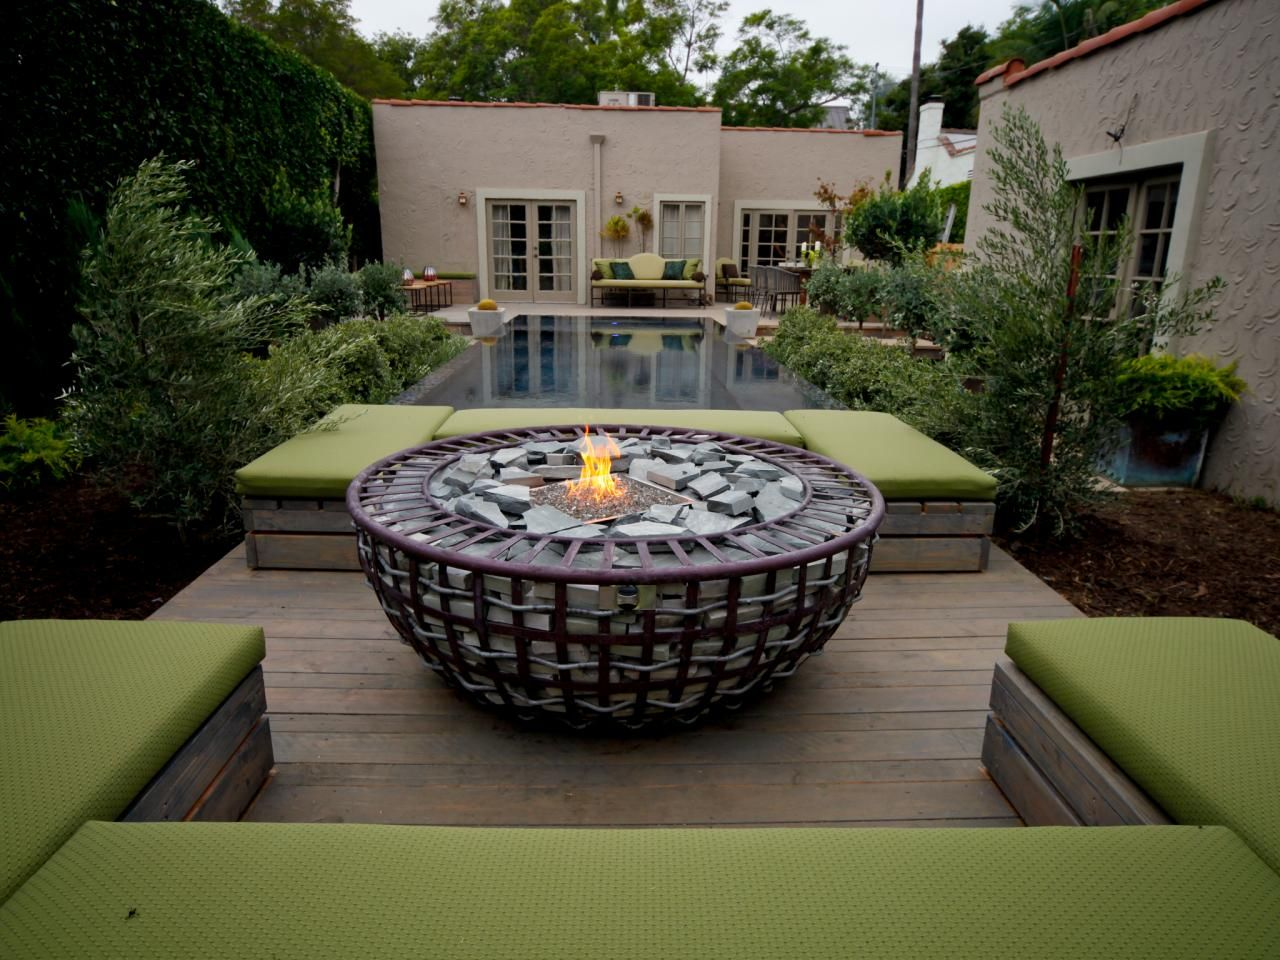 Check Out A Few Of Our Favorite Ideas To Steal For Your Own Fire Pit Design  Dreams, As Well As Some Tips For Creating The Coziest Outdoor Spots This  Fall.